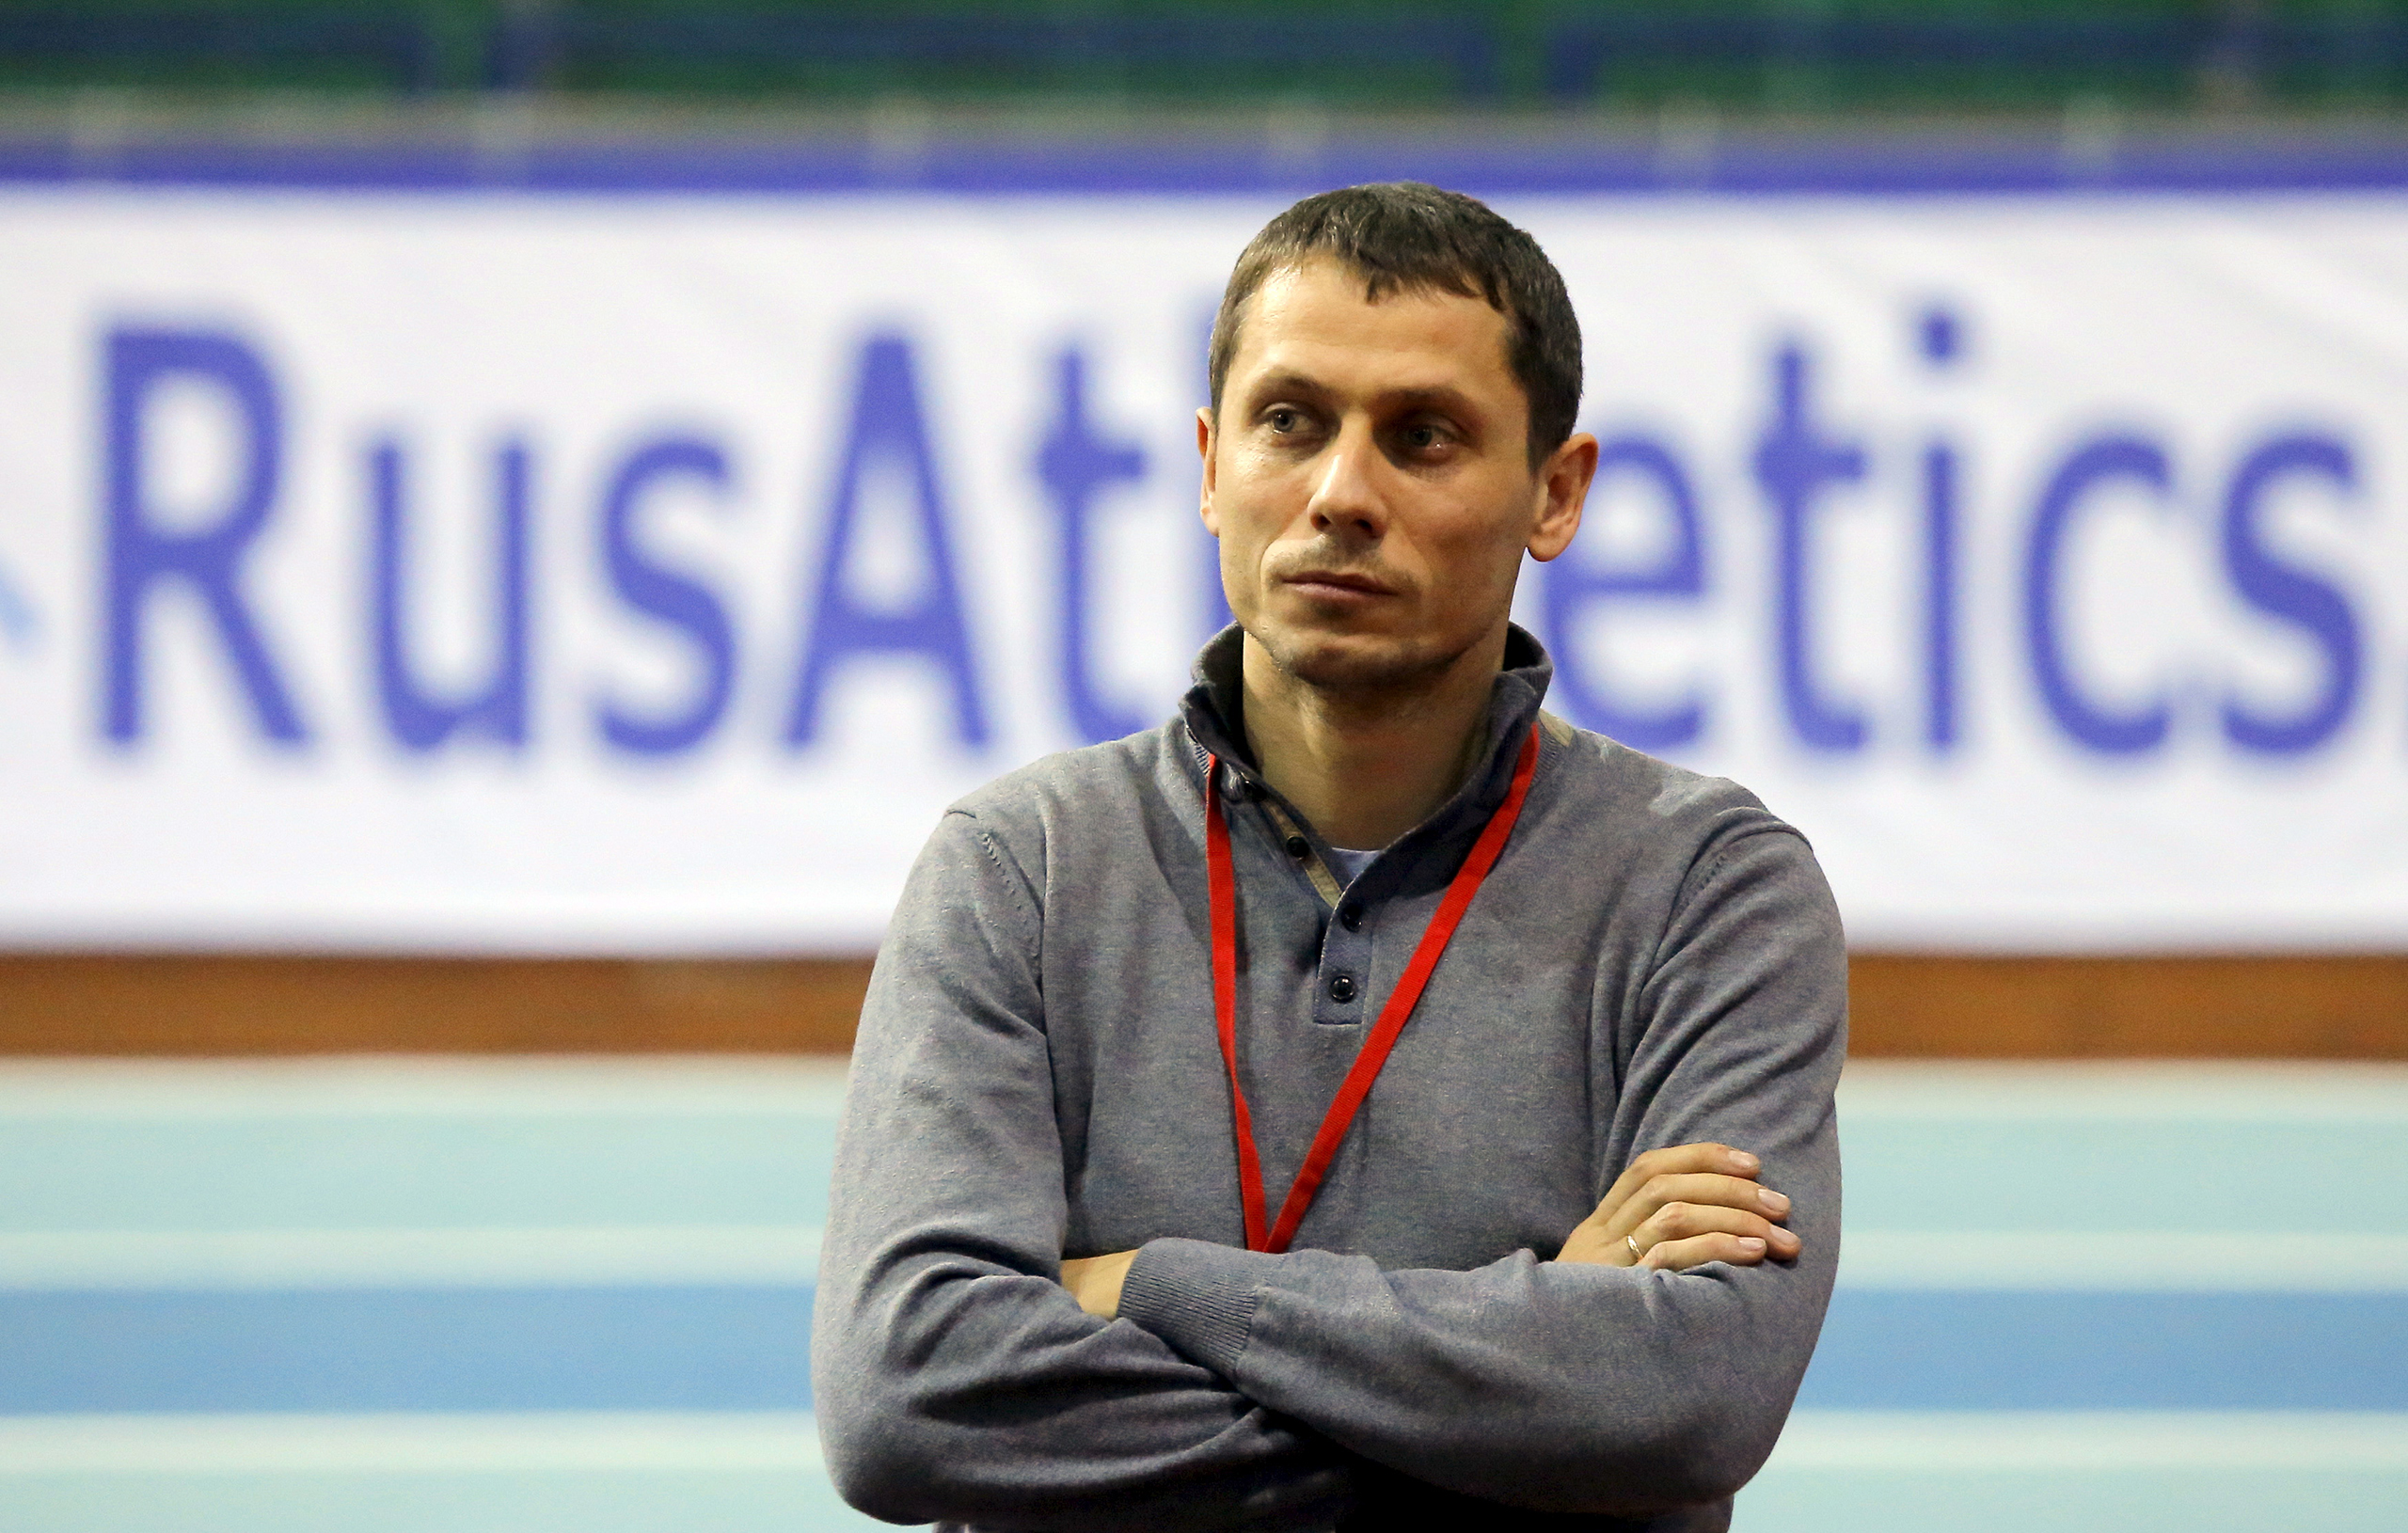 Yury Borzakovsky, head coach of Russian athletics team, attends the Russian Indoor Championships 2016 in Moscow, Feb. 24, 2016.